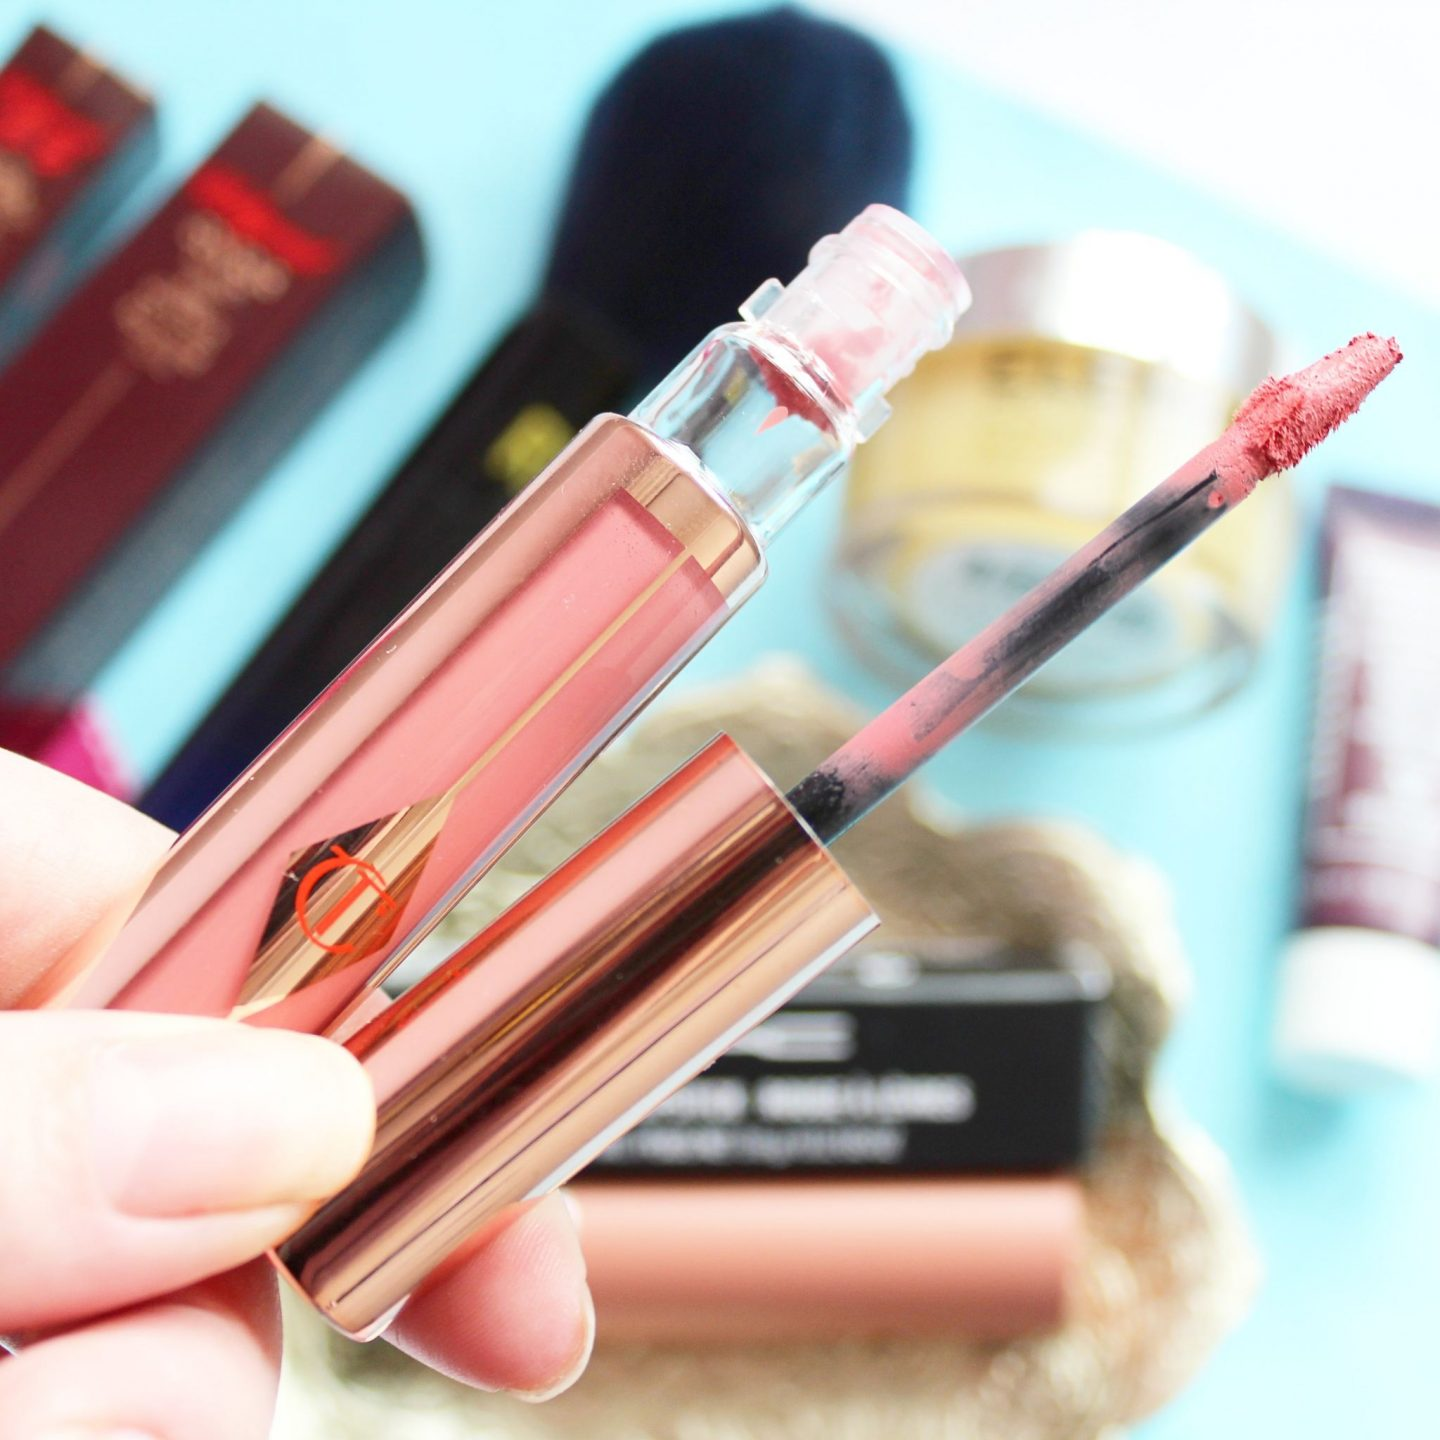 Latest in Beauty | Charlotte Tilbury Hollywood Lips Matte Contour Liquid Lipstick